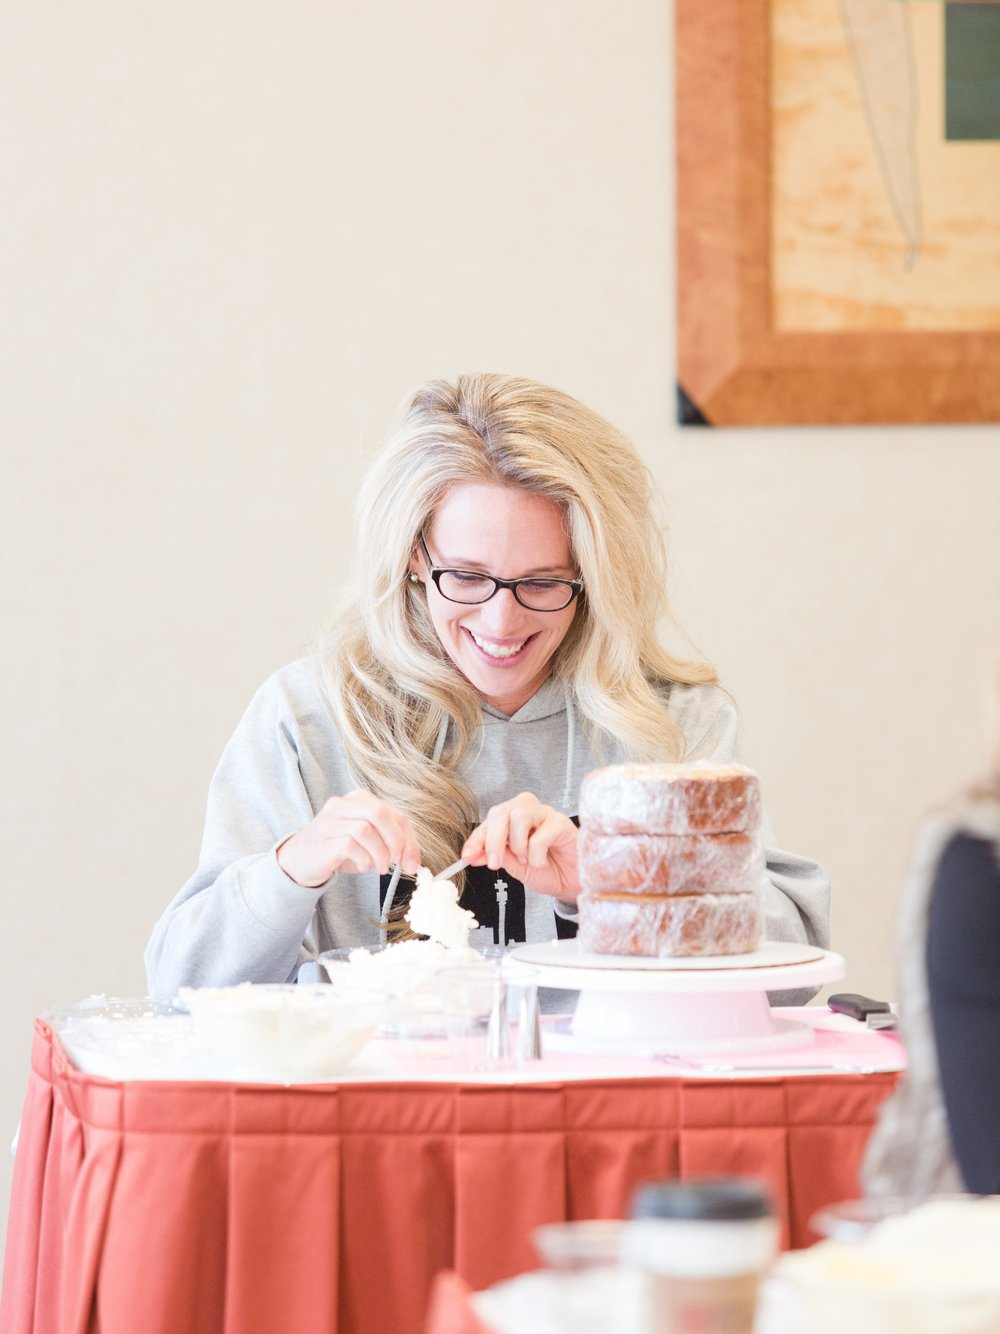 Sorby Sweets Cake Class March 16th 2018-edited-0025.jpg